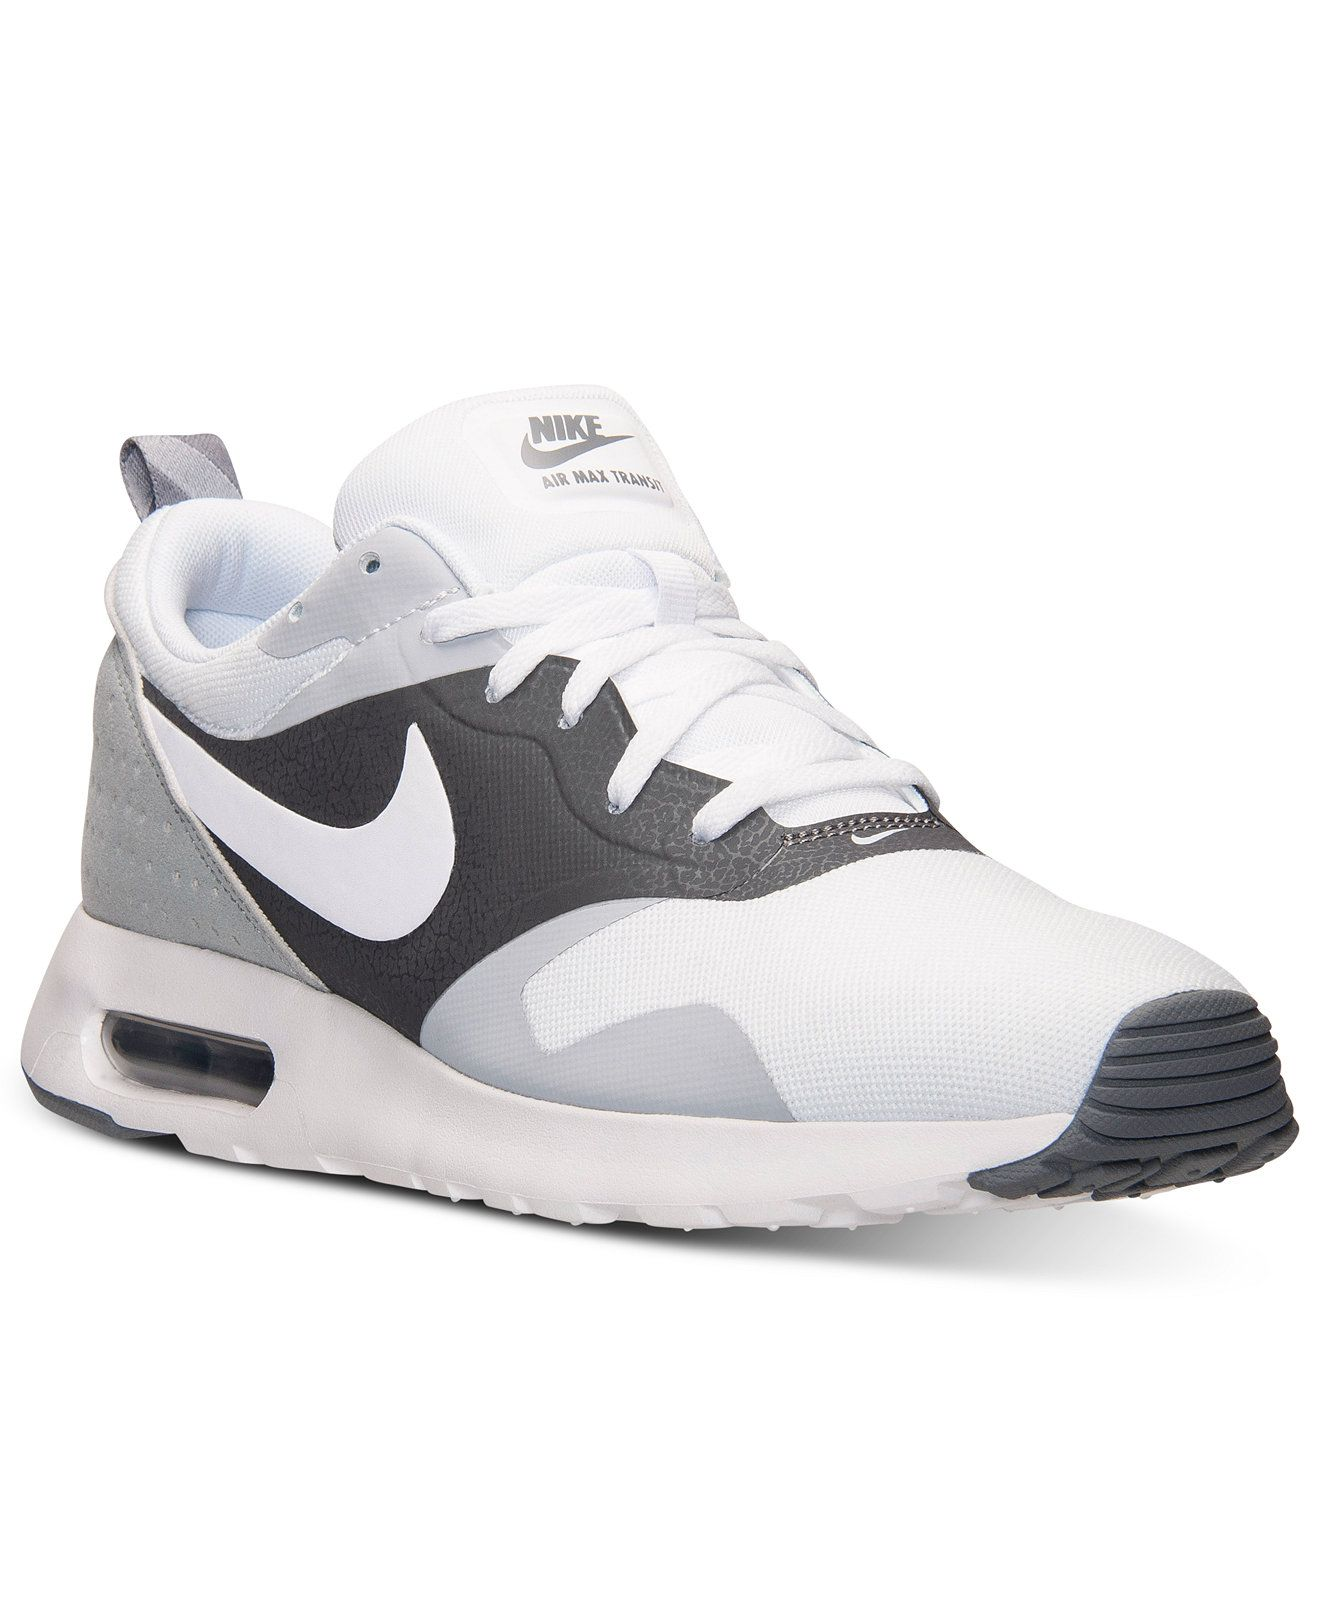 Chelín esencia FALSO  Nike Men's Air Max Tavas Sneakers from Finish Line - Finish Line Athletic  Shoes - Men - Macy's | Nike men, Sneakers, Shoes mens